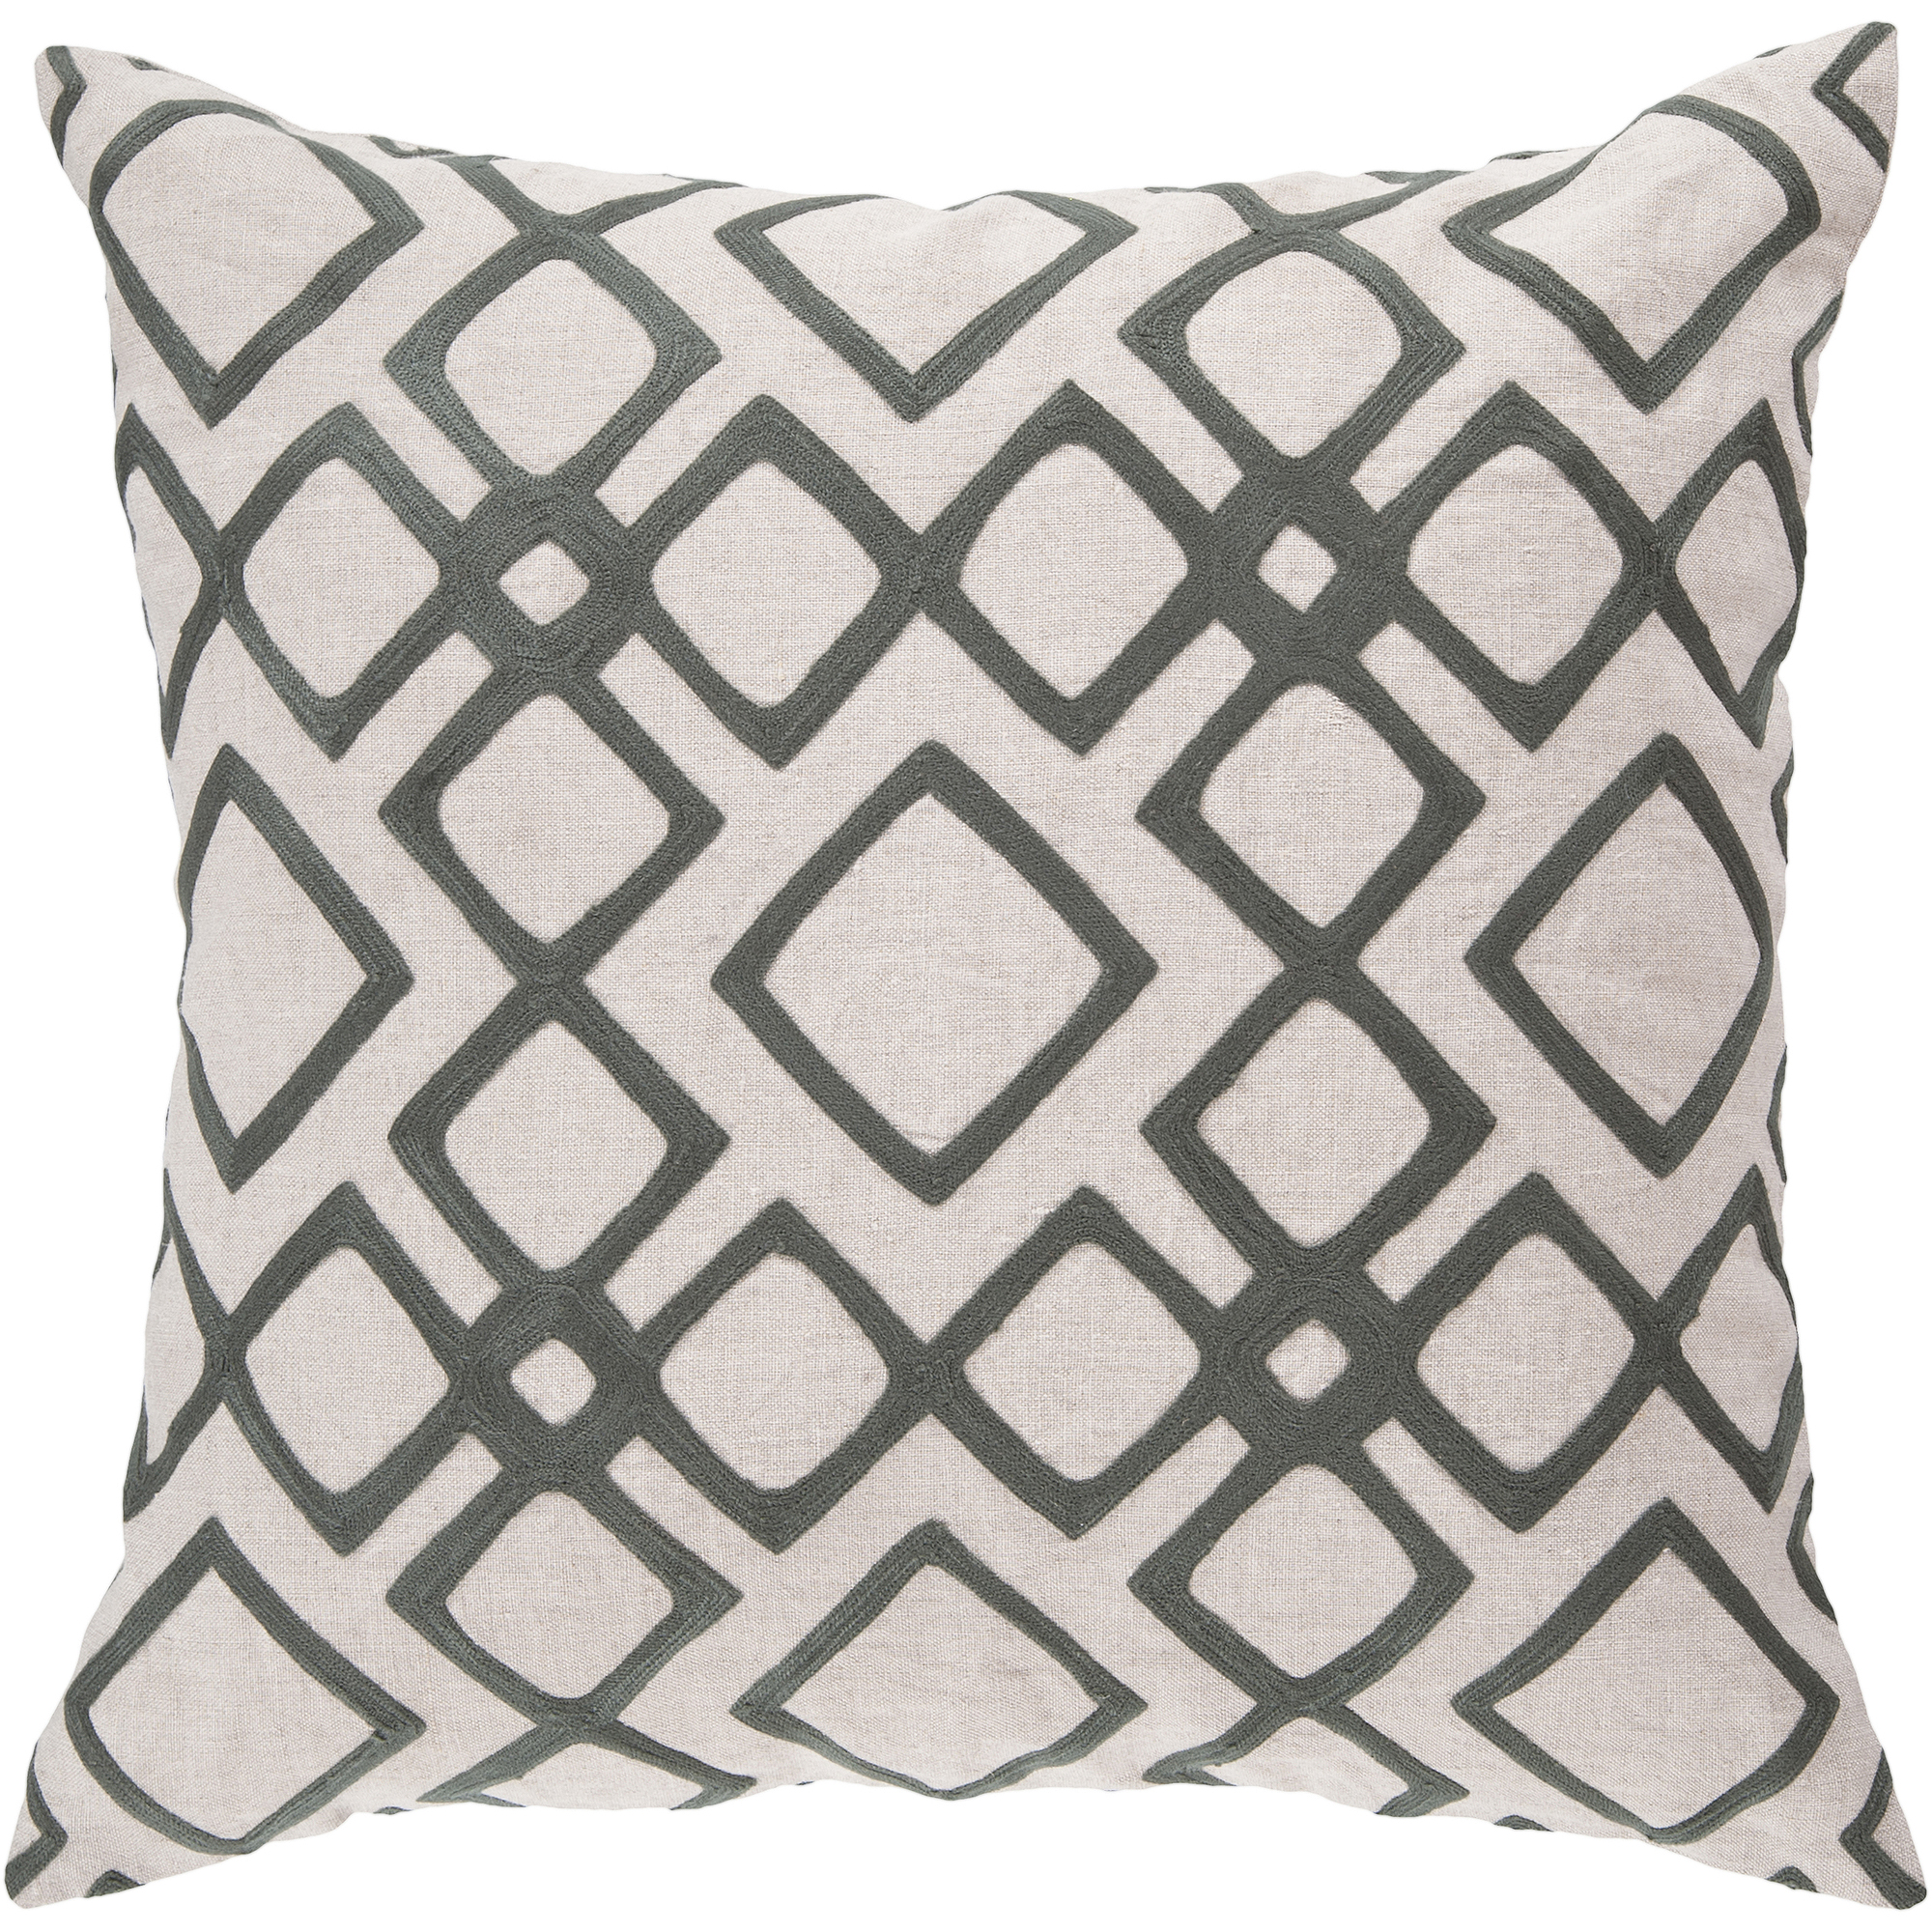 Art of Knot Beaumont Hand Crafted Wool Embroidery Linen Decorative Pillow with Poly Filler, Charcoal